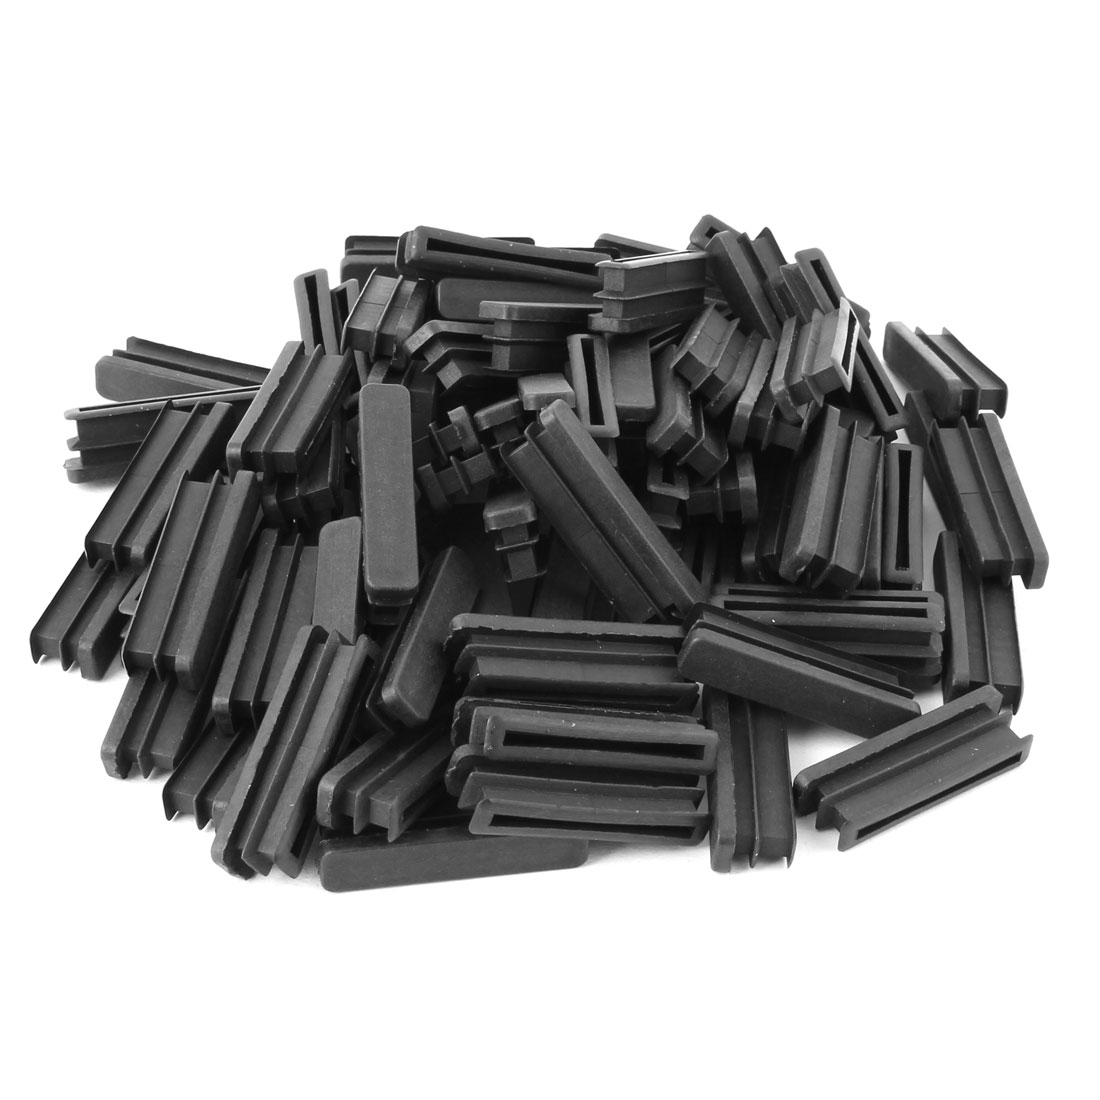 Home Plastic Rectangle Floor Protecting Furniture Table Leg Tube Inserts Black 50 x 10mm 80pcs